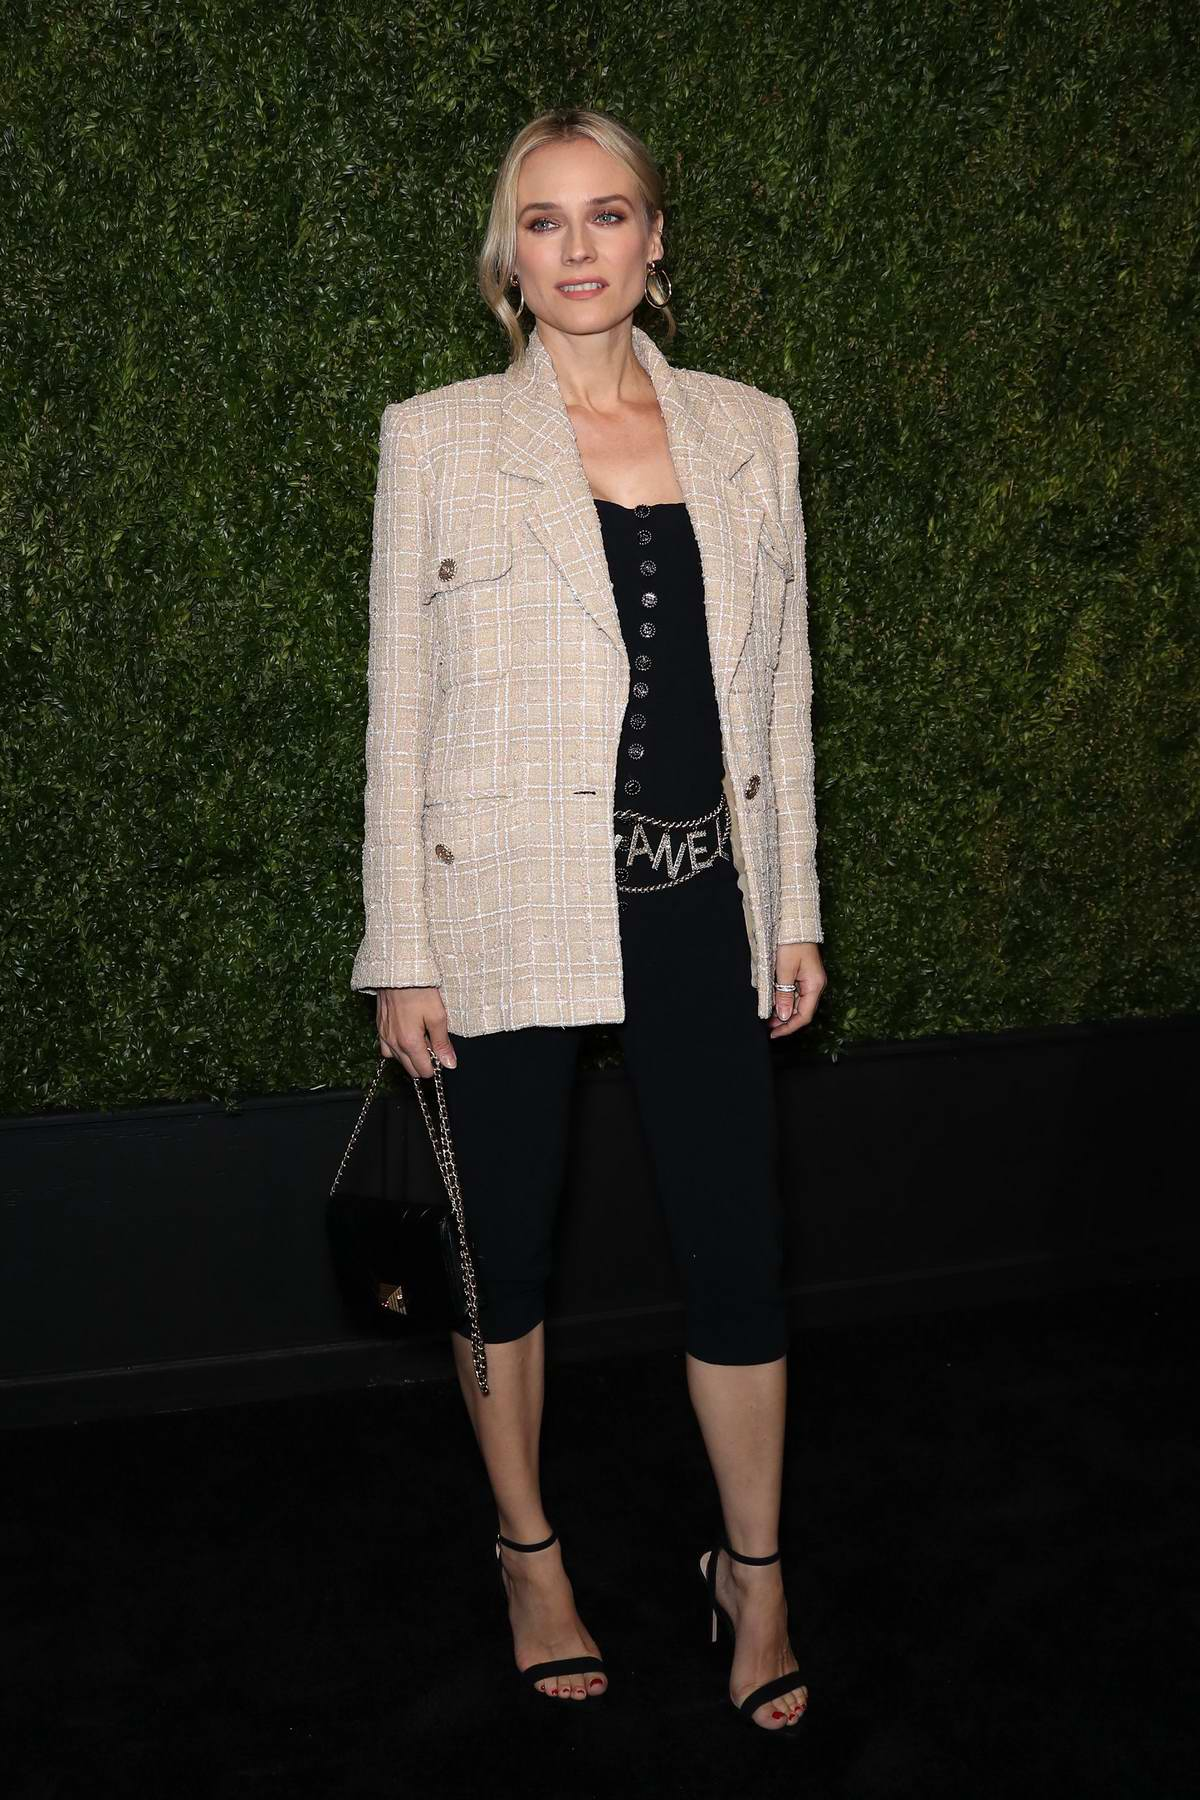 Diane Kruger attends the 14th Annual Tribeca Film Festival Artists Dinner hosted by Chanel in New York City